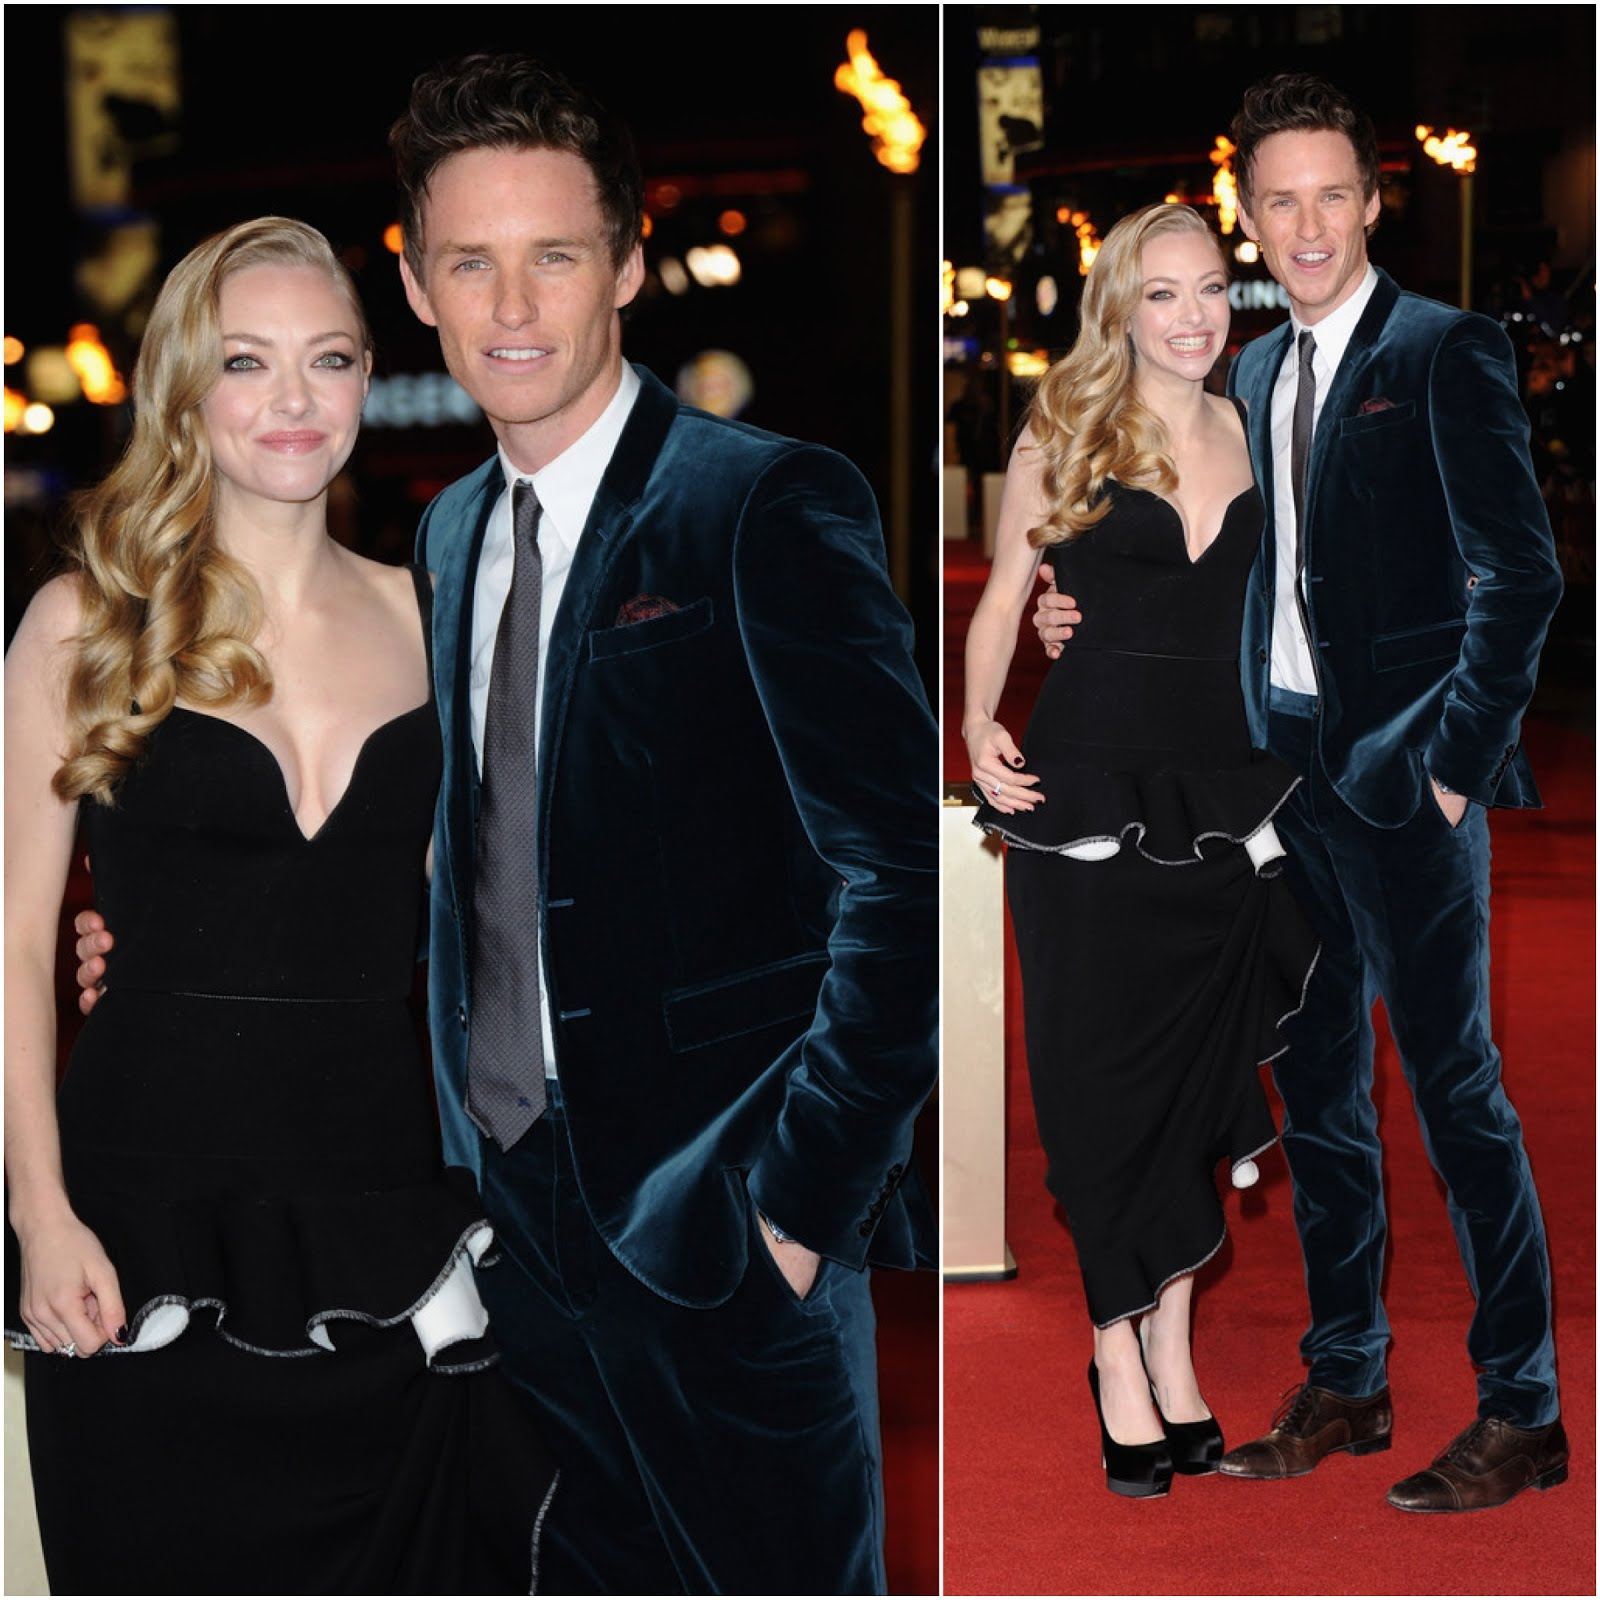 00O00 London Menswear Blog Celebrity Style Amanda Seyfried and Eddie Redmayne in Burberry - Les Miserables World Premiere, London